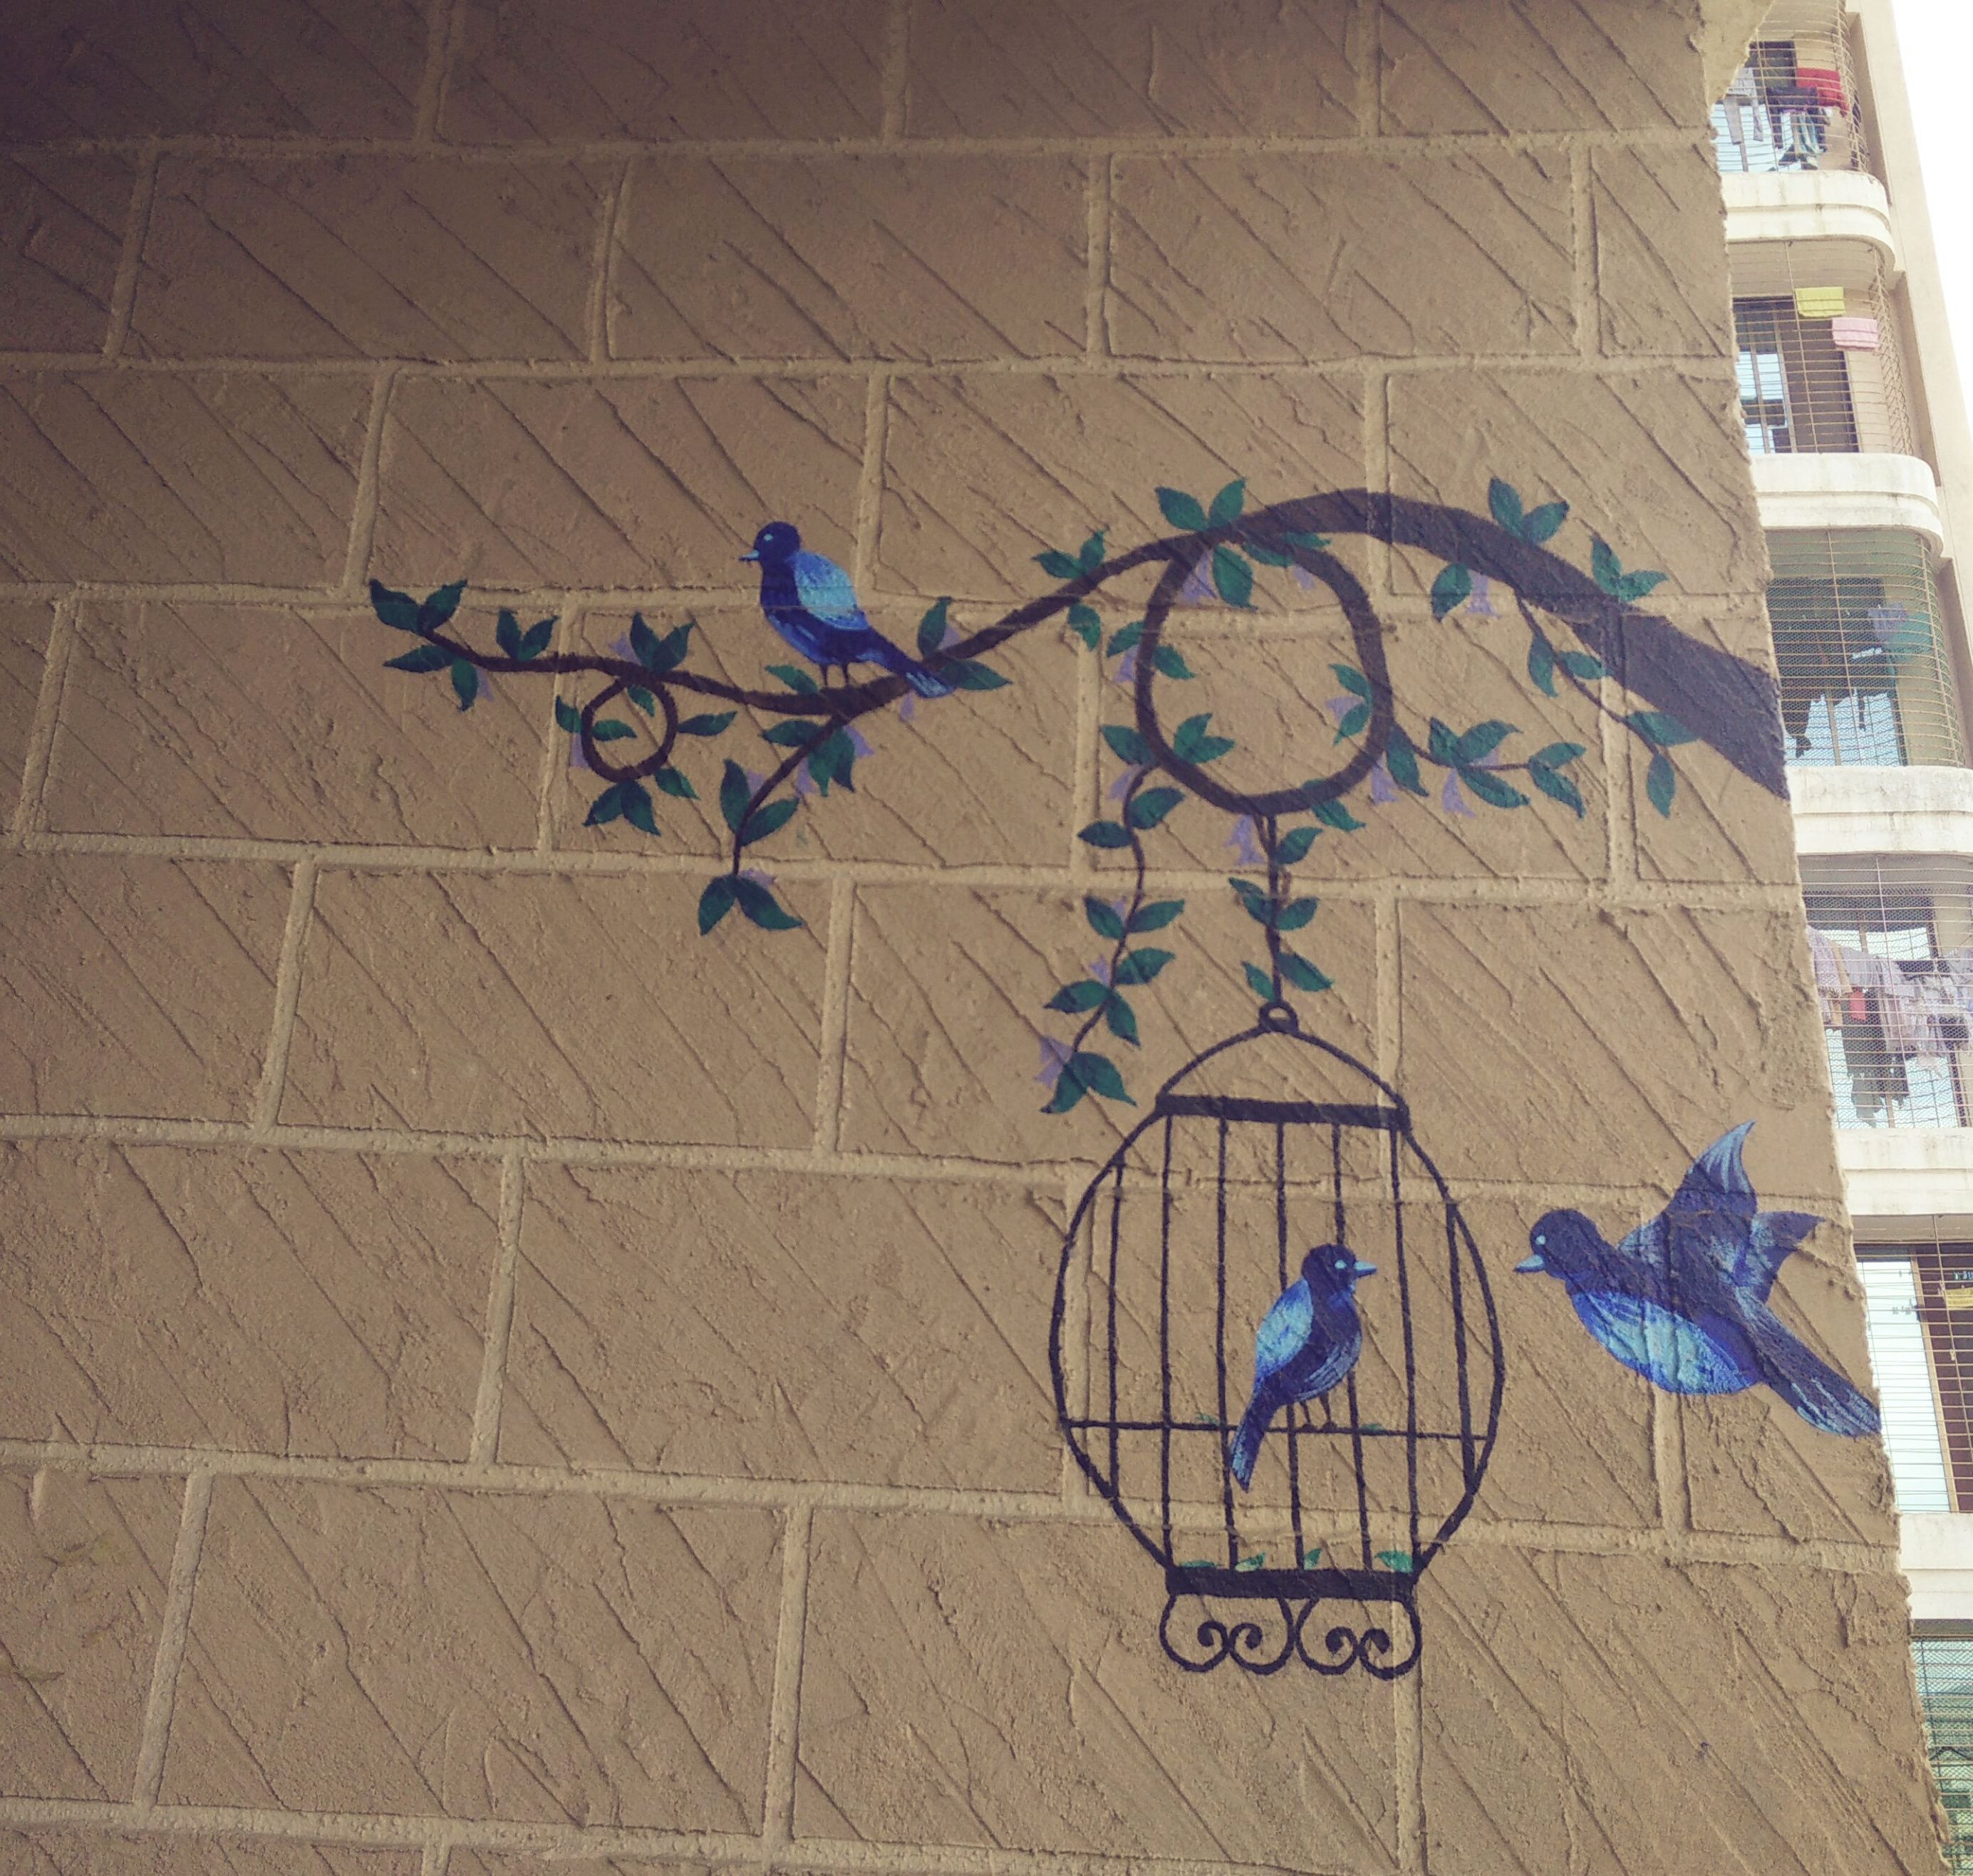 c5d40e915d7a A weekend spent in the balcony with my paintbox.  wallpainting  decor  birds   leaves  flowers  interiors  painting  walls  blue  cage  greens  brickwall